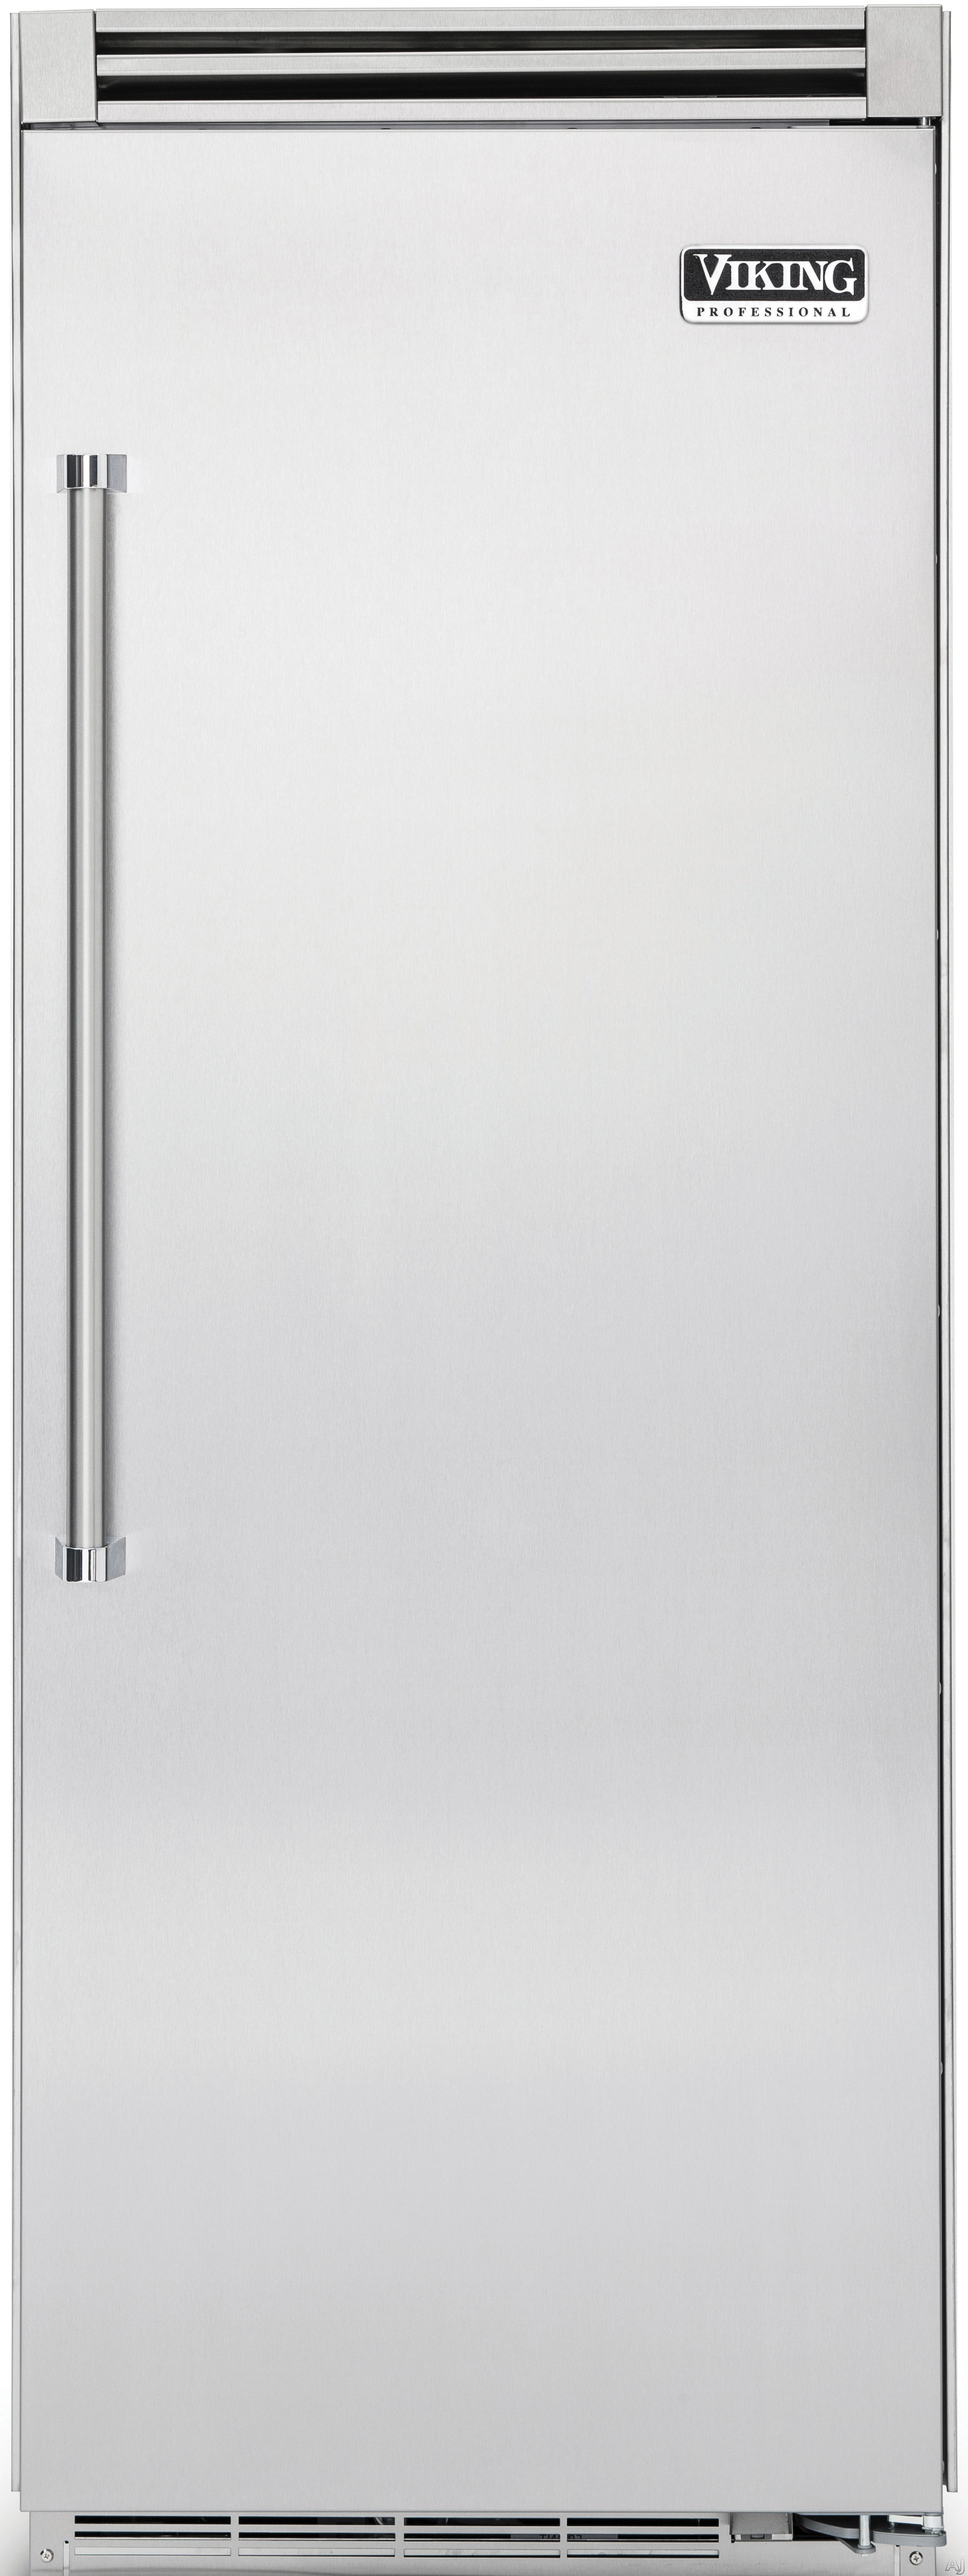 Viking Professional 5 Series VCFB5363 36 Inch Built-In Full Freezer Column with 19.2 cu. ft. Capacity, 7 Total Shelves, 2 Wire Baskets, 5 Aluminum Door Bins, Adaptive Defrost and ProChill Temperature Management System